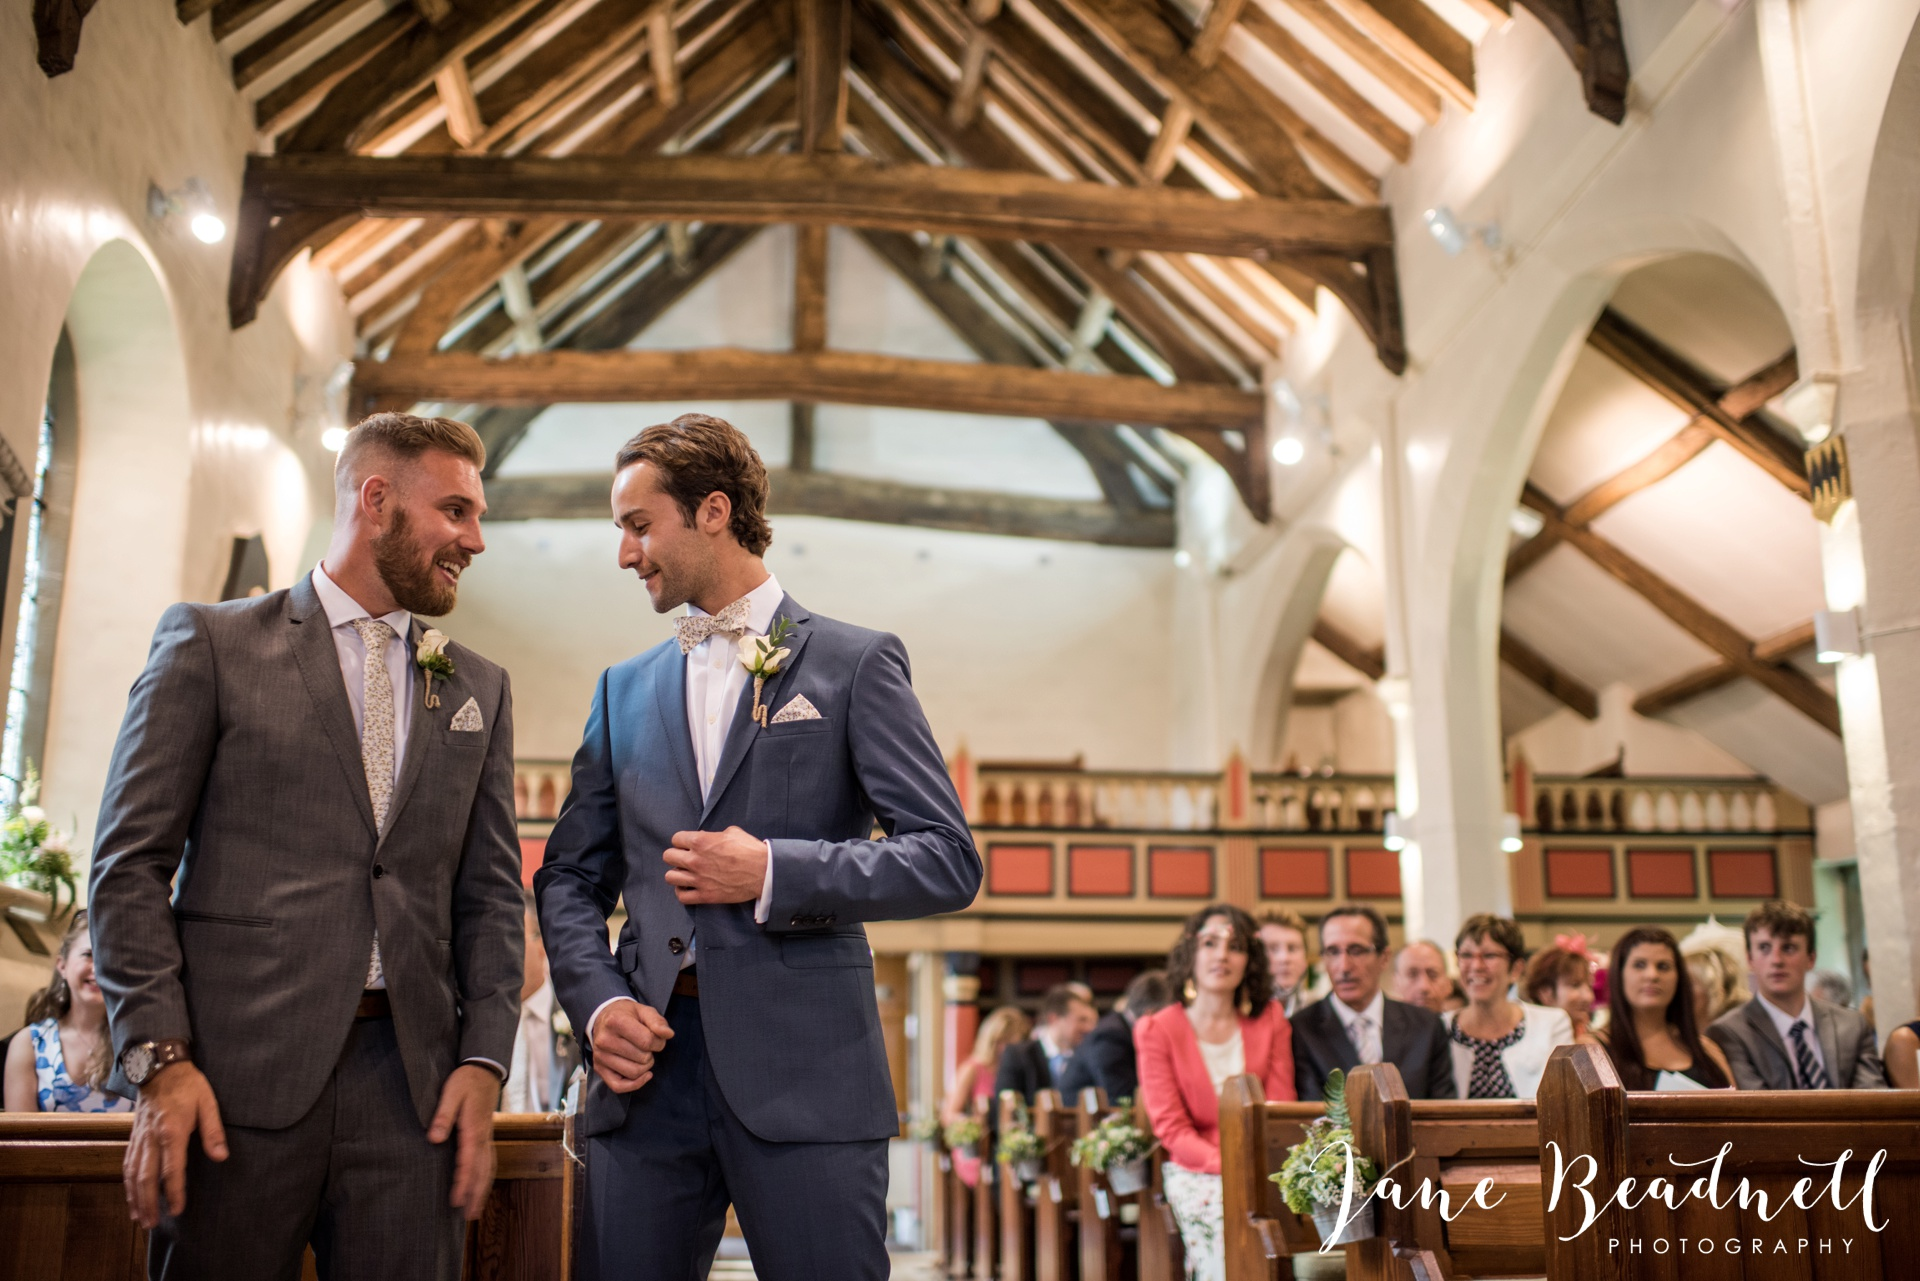 Jane Beadnell fine art wedding photographer Leeds_0026